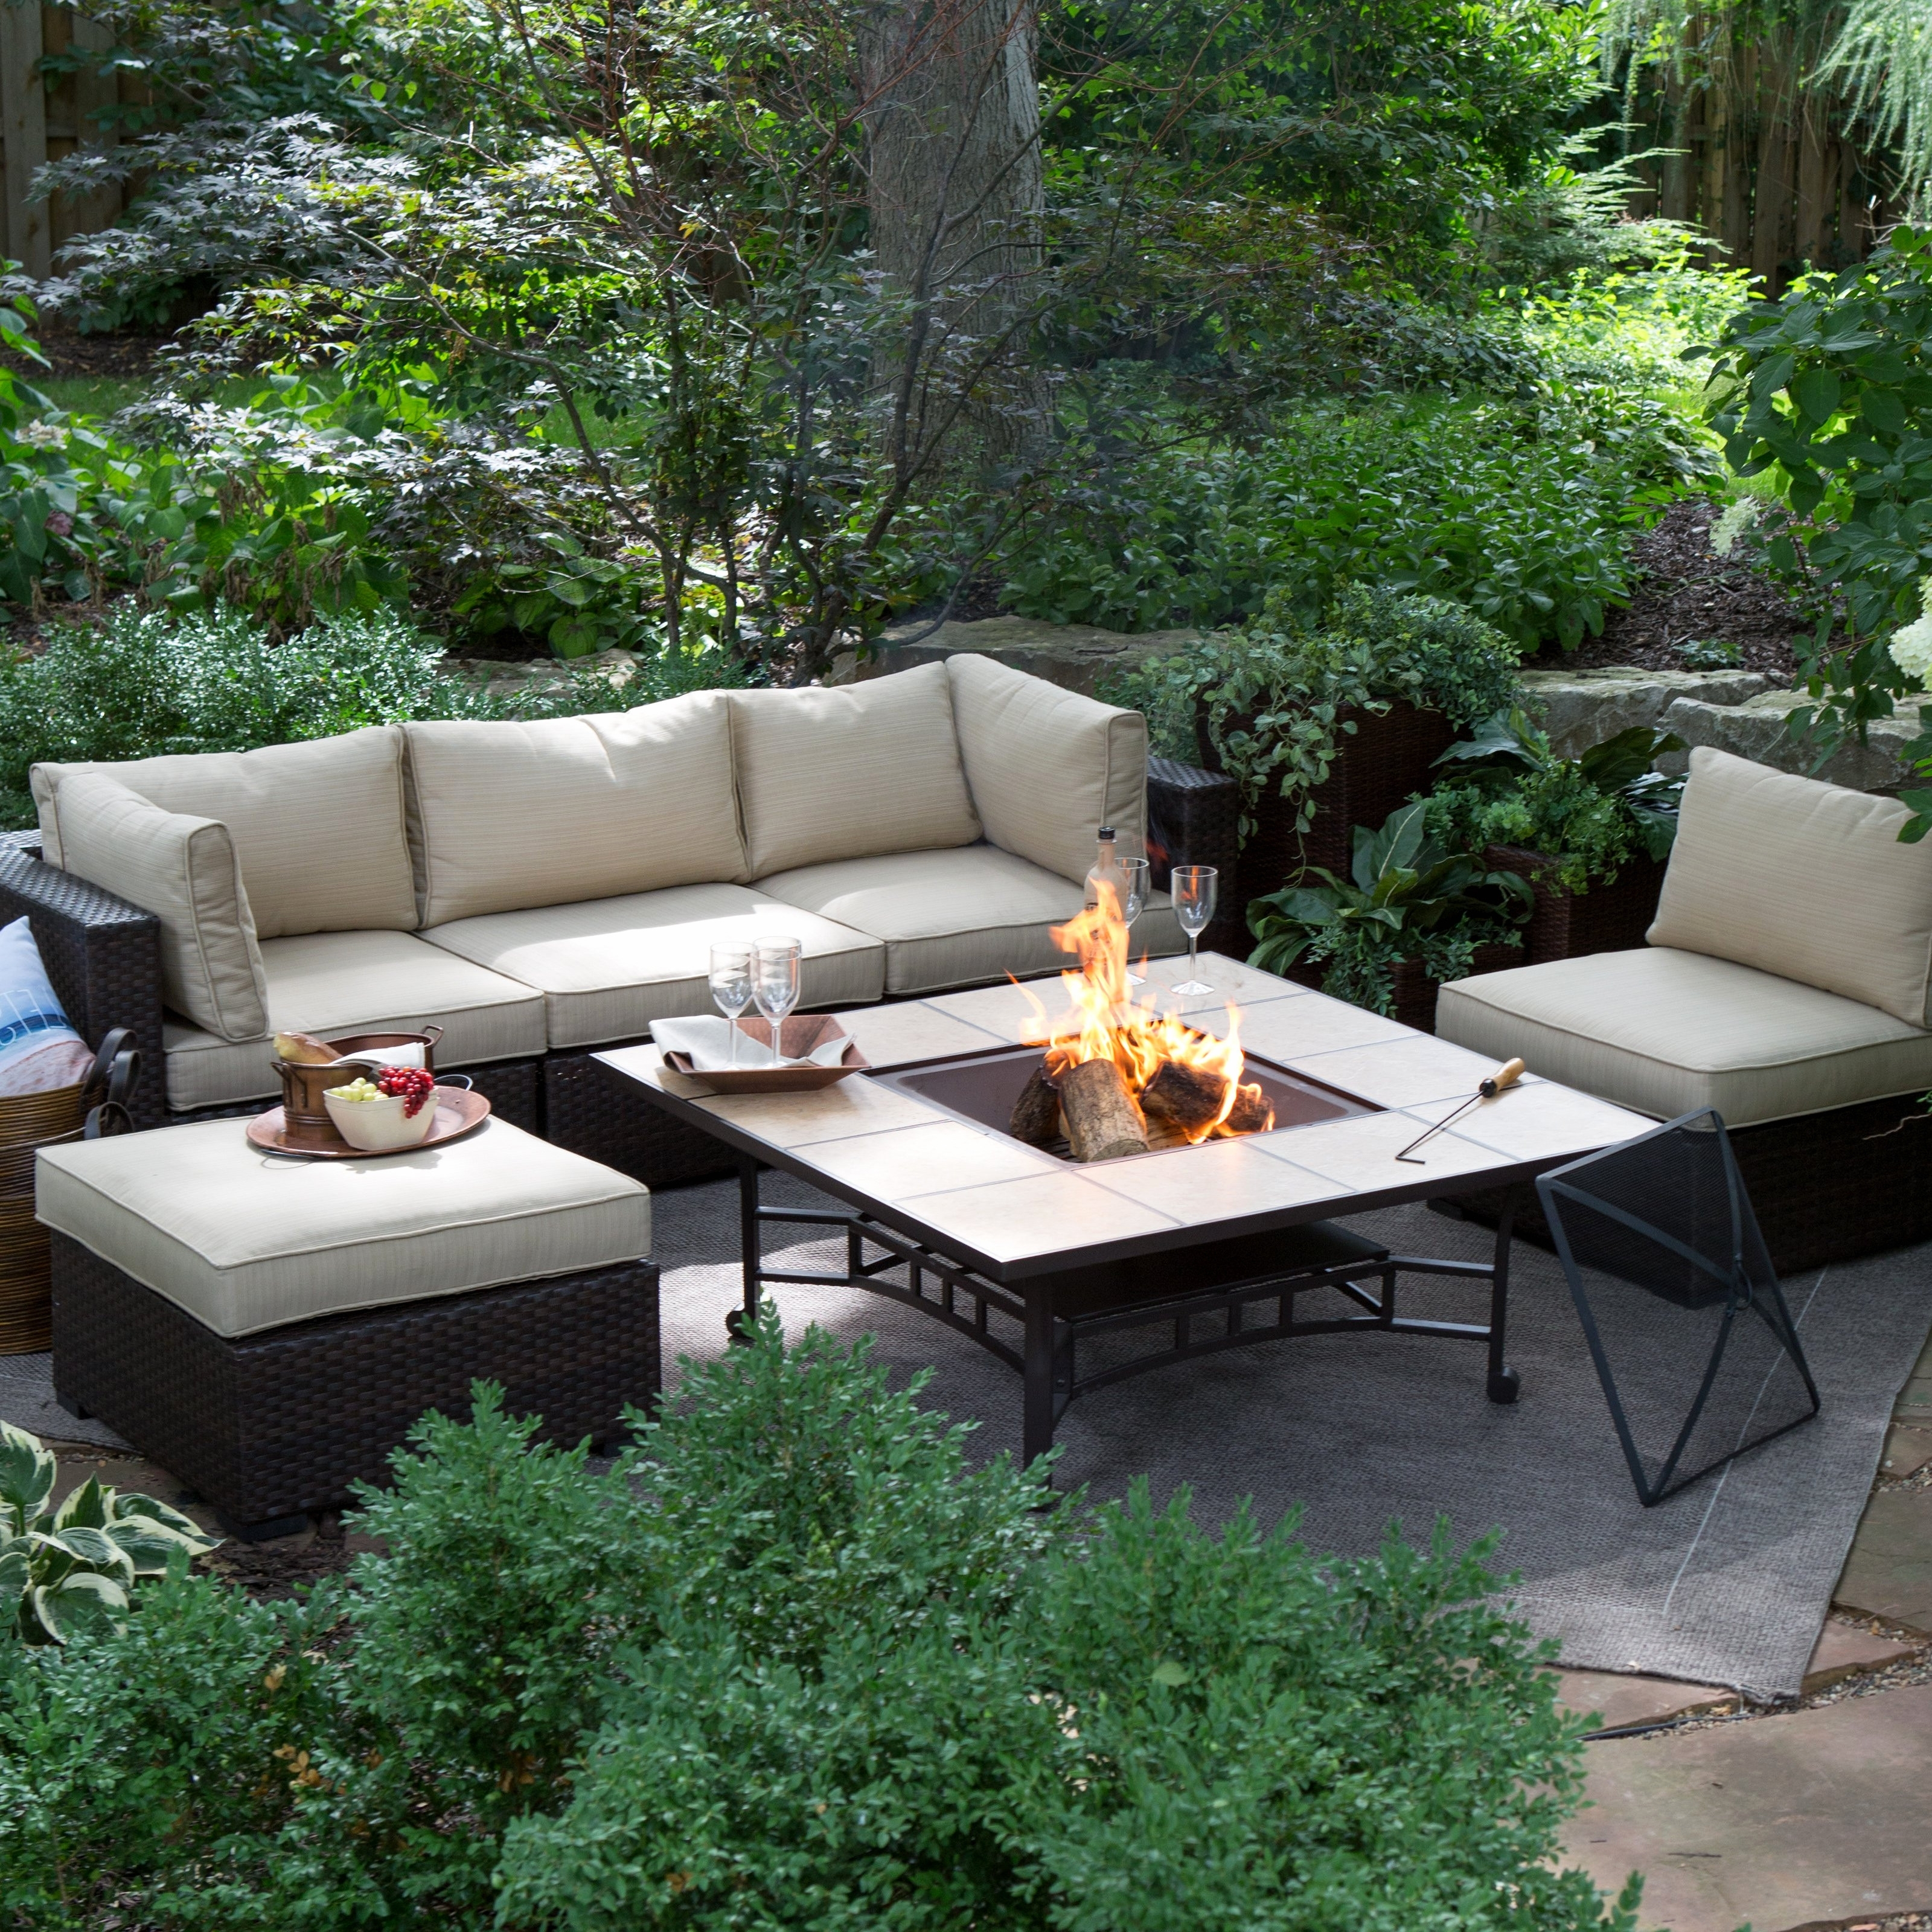 Patio Furniture Conversation Sets With Fire Pit For Most Current Patio Table With Gas Fire Pit Lovely Conversation Sets Fire Pit (View 12 of 15)